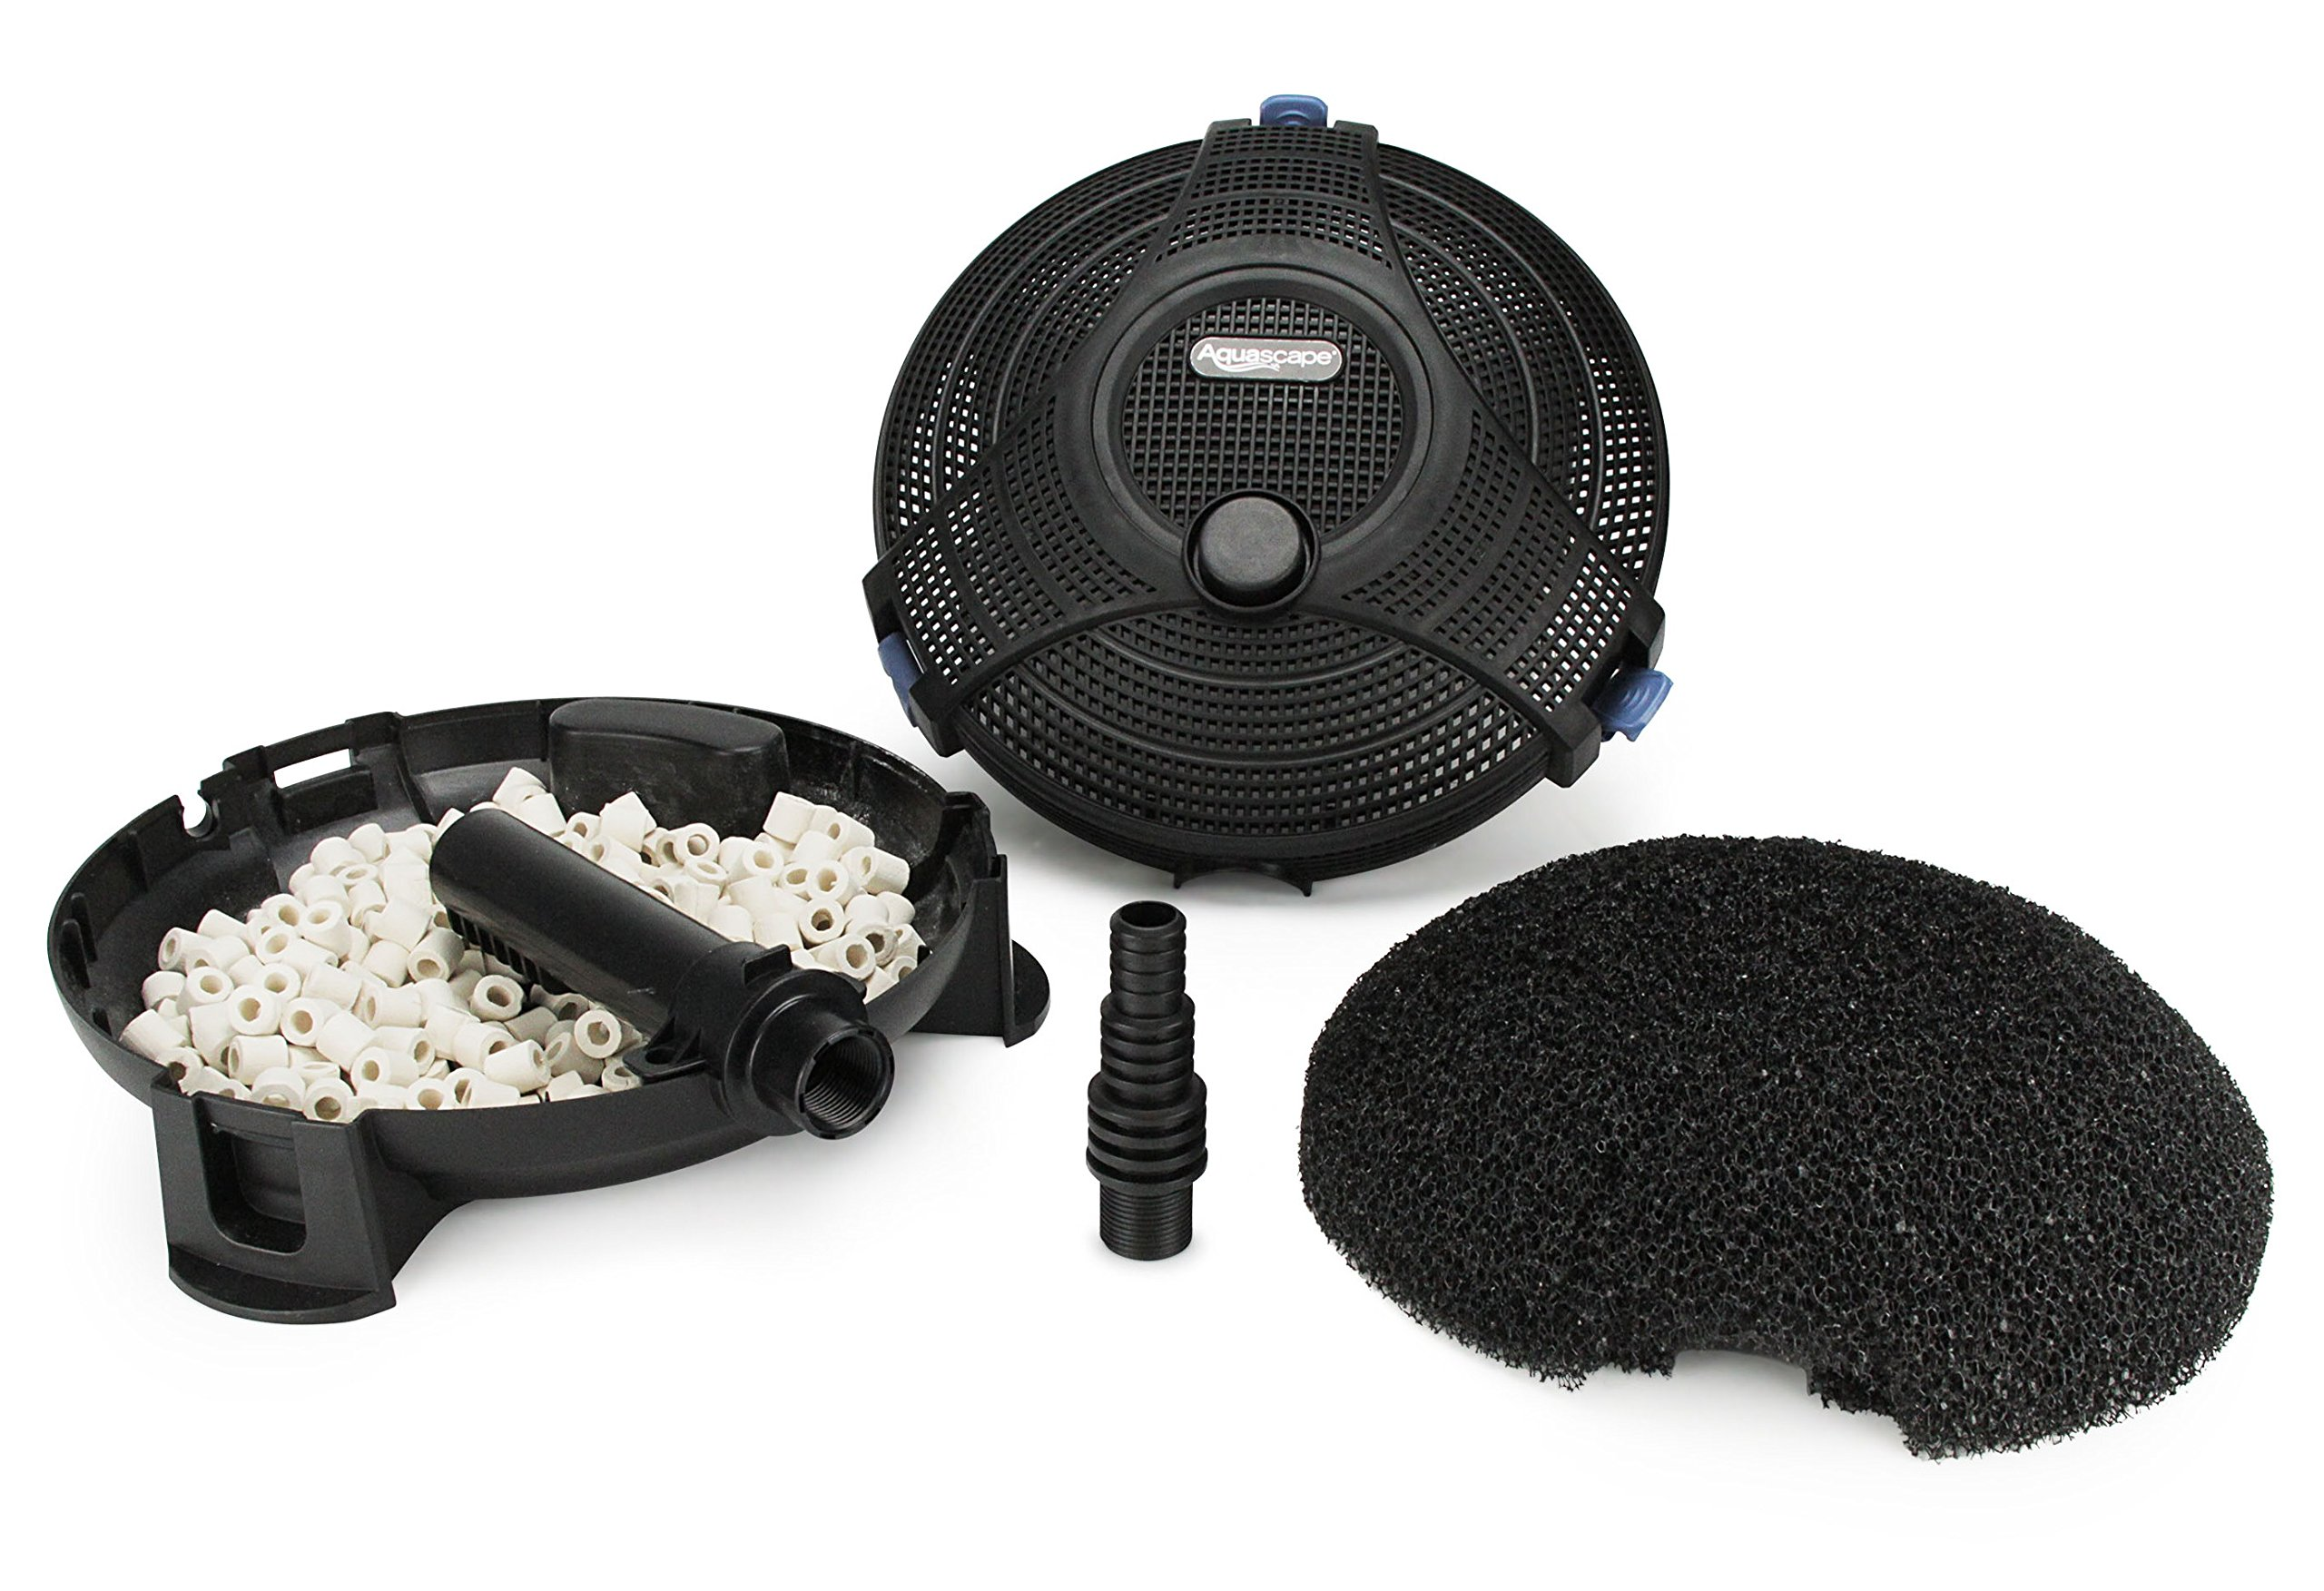 Aquascape Submersible Pond Water Filter | 95110 by Aquascape (Image #3)